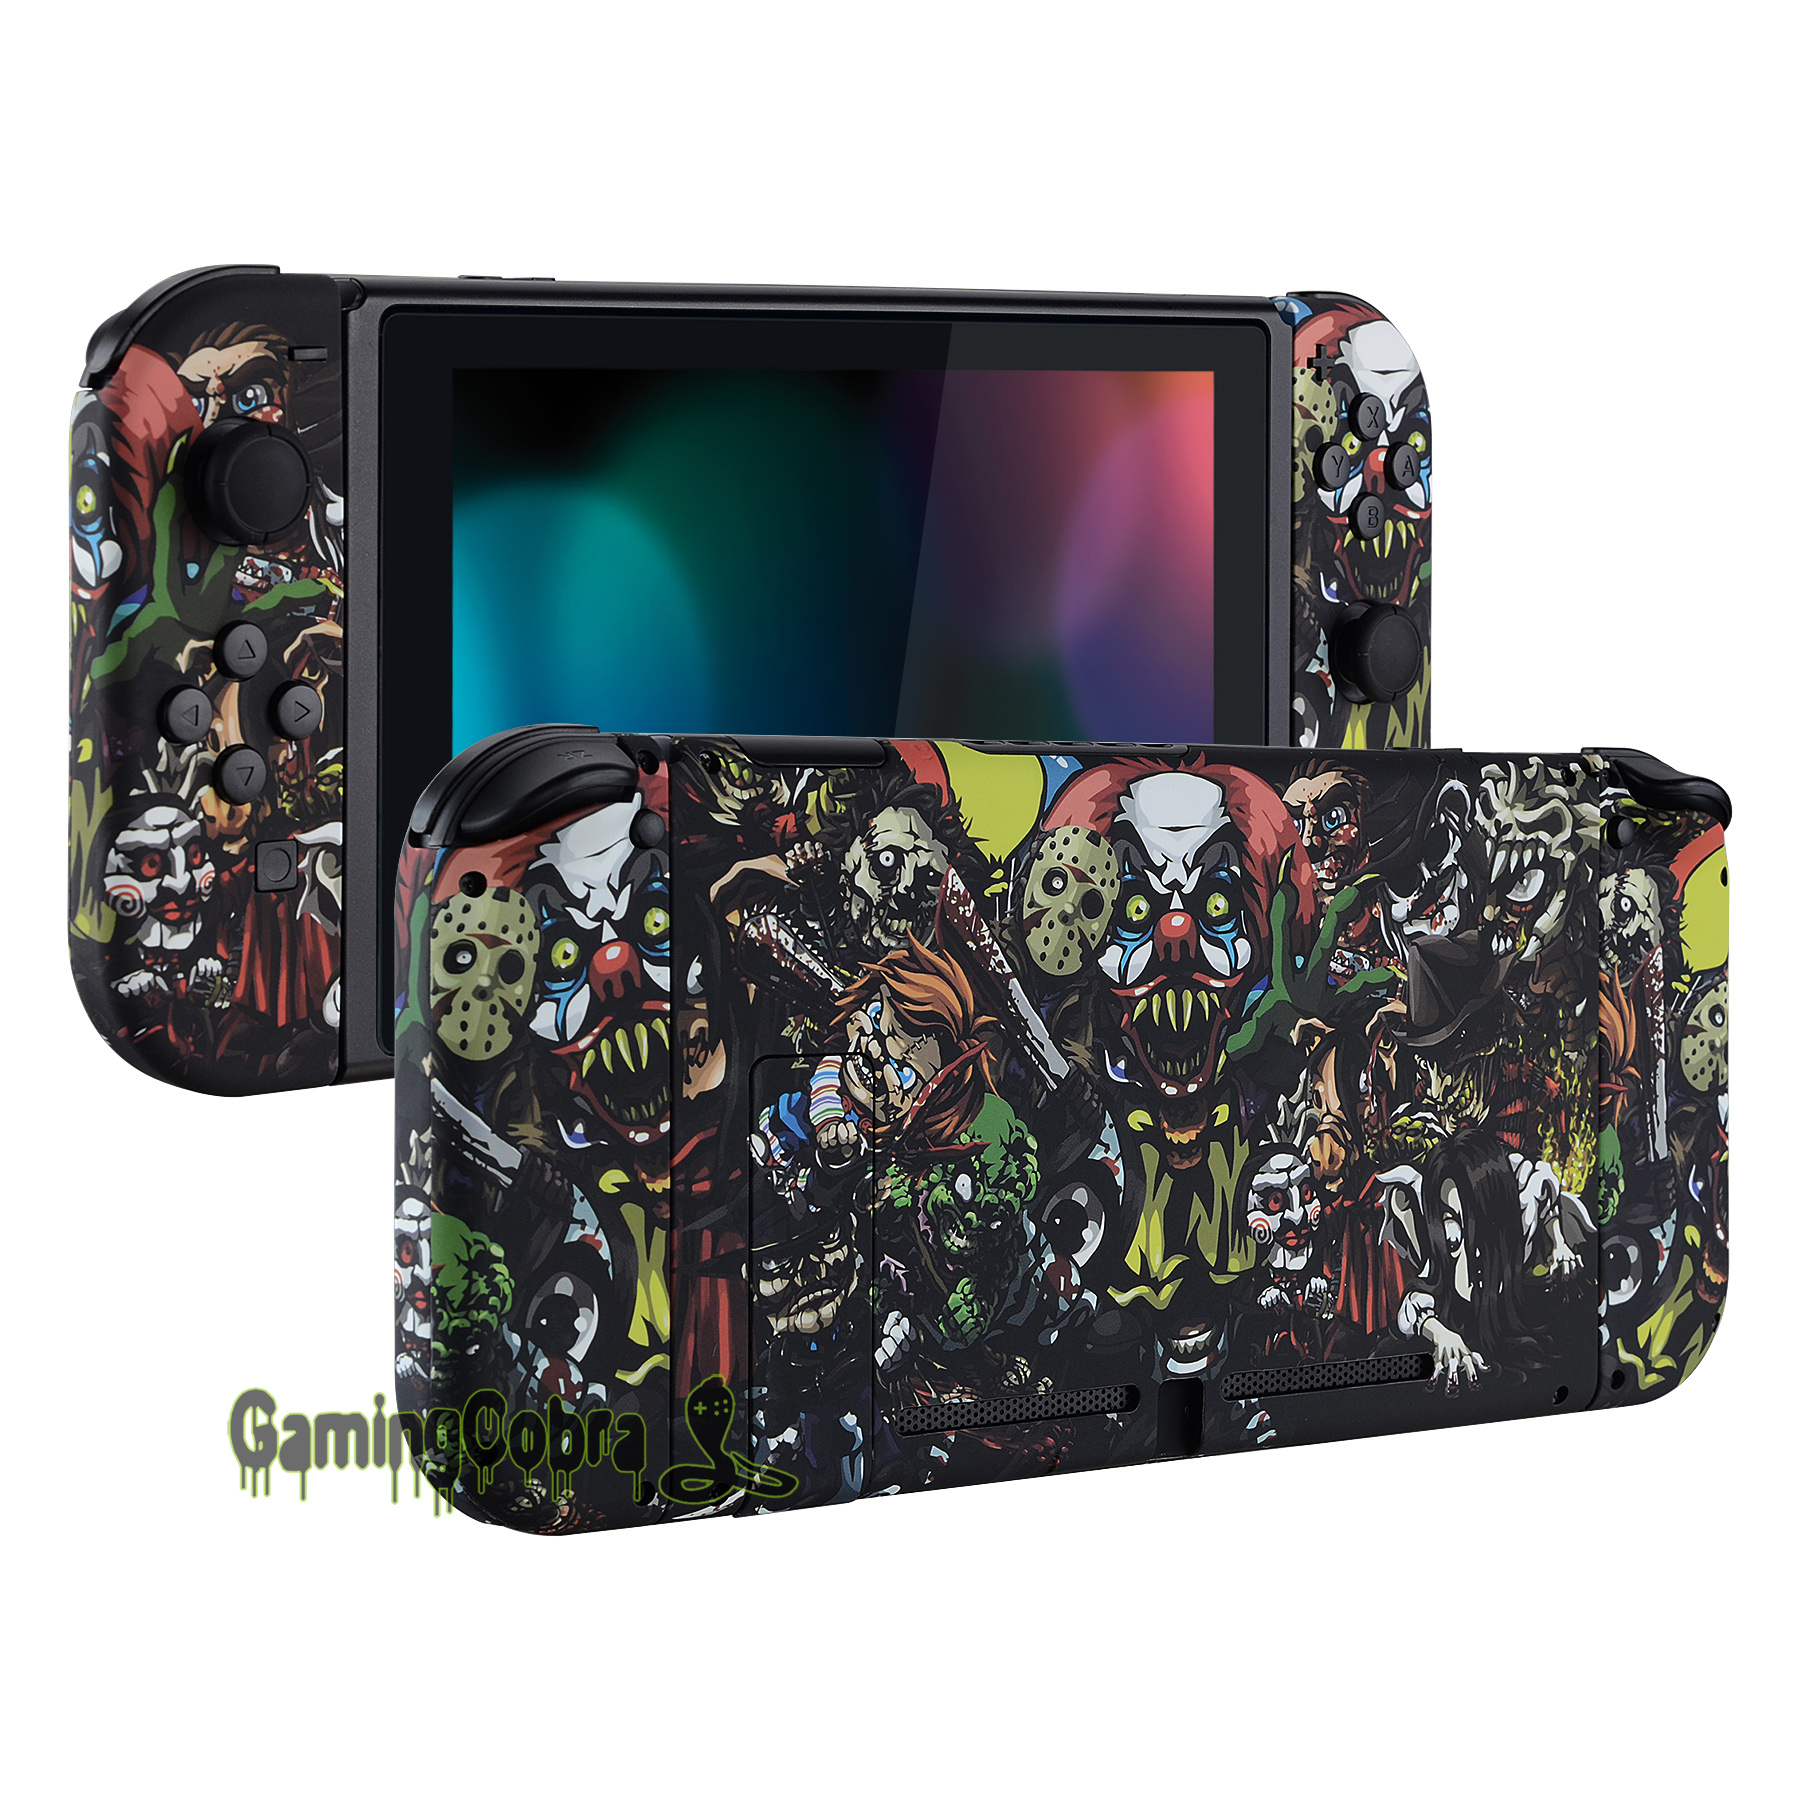 Scary Party Soft Touch Back Plate w/ Controller Housing Shell w/ Full Set Buttons for Nintendo Switch Handheld Console & Joy-ConScary Party Soft Touch Back Plate w/ Controller Housing Shell w/ Full Set Buttons for Nintendo Switch Handheld Console & Joy-Con